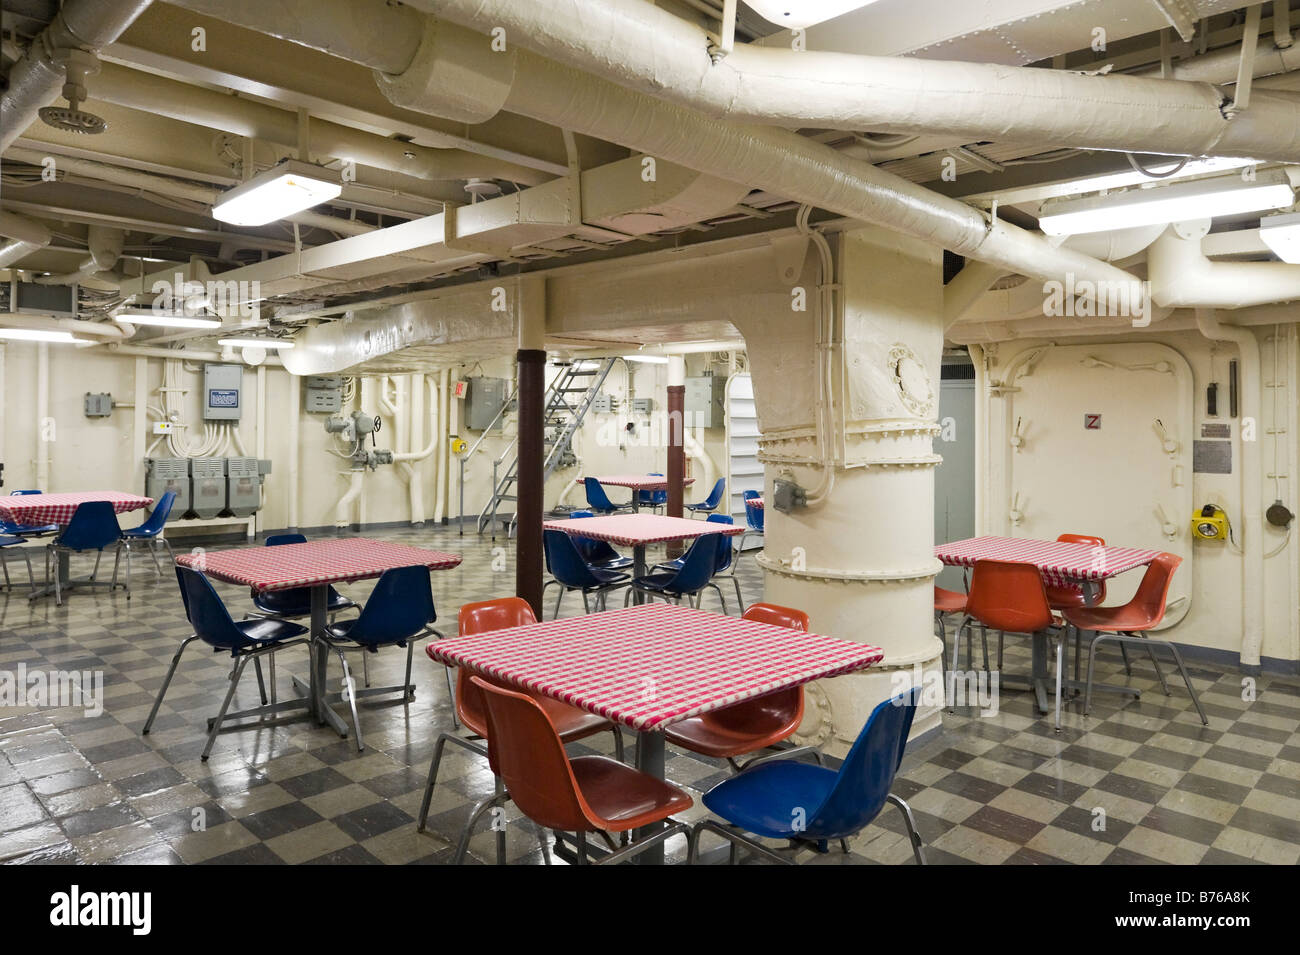 Mess hall onboard the USS Yorktown aircraft carrier, Patriots Point Naval Museum, Charleston Harbor, South Carolina - Stock Image